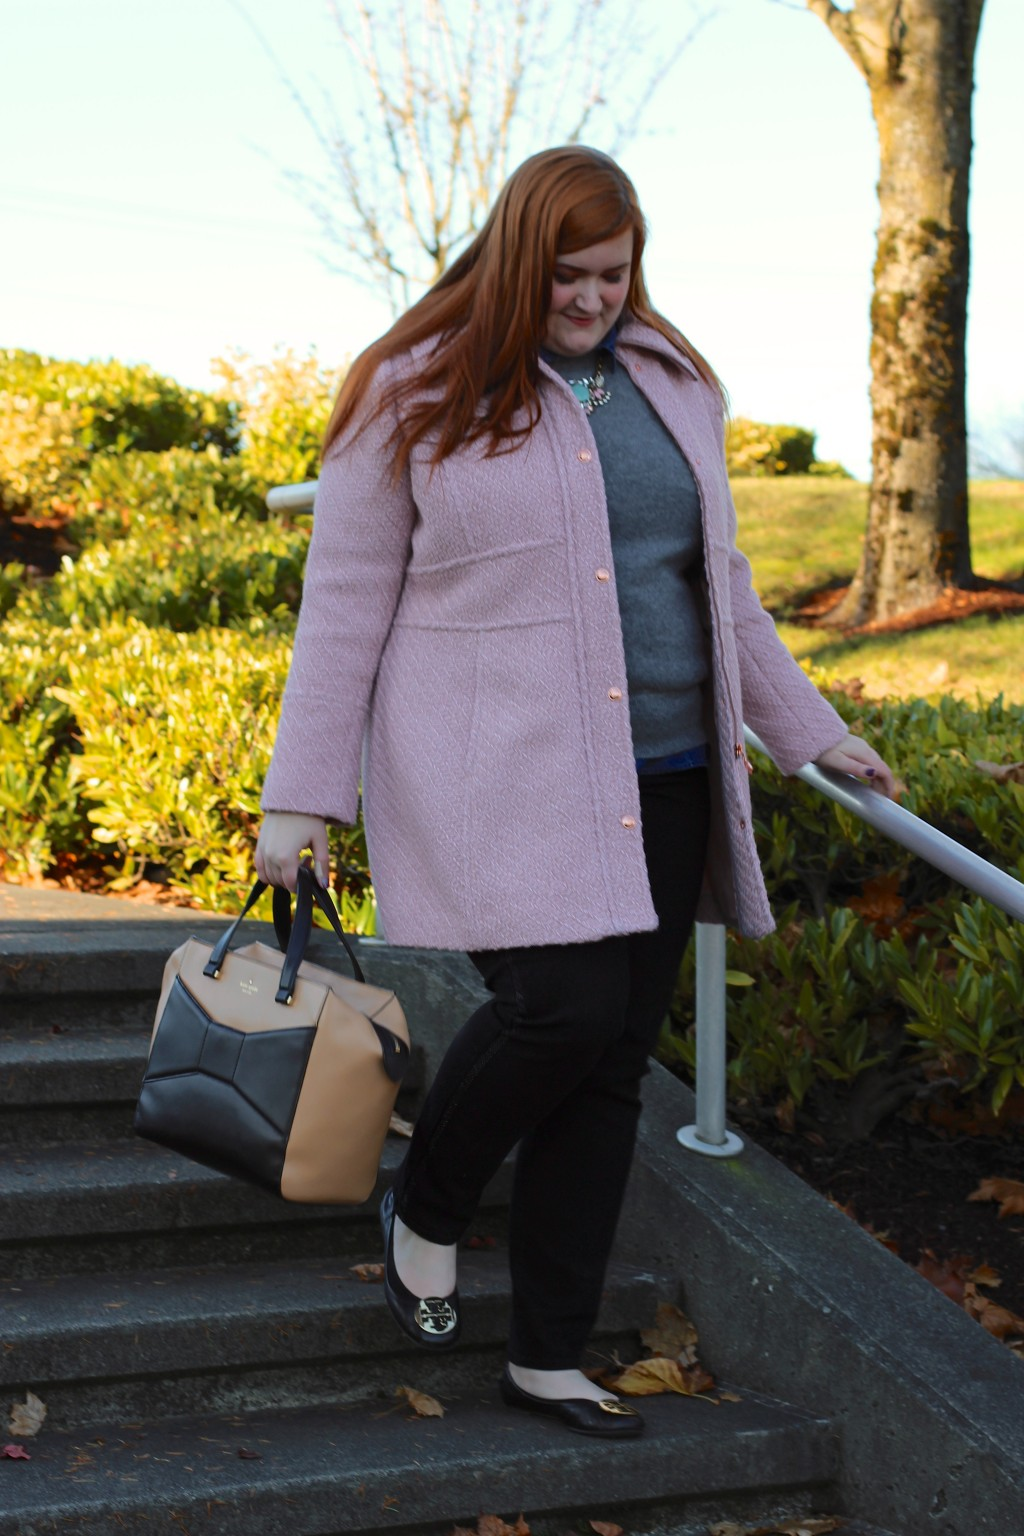 All Things Kate in Kate Spade, Jessica Simpson, NYDJ, Tory Burch, Lucky Brand